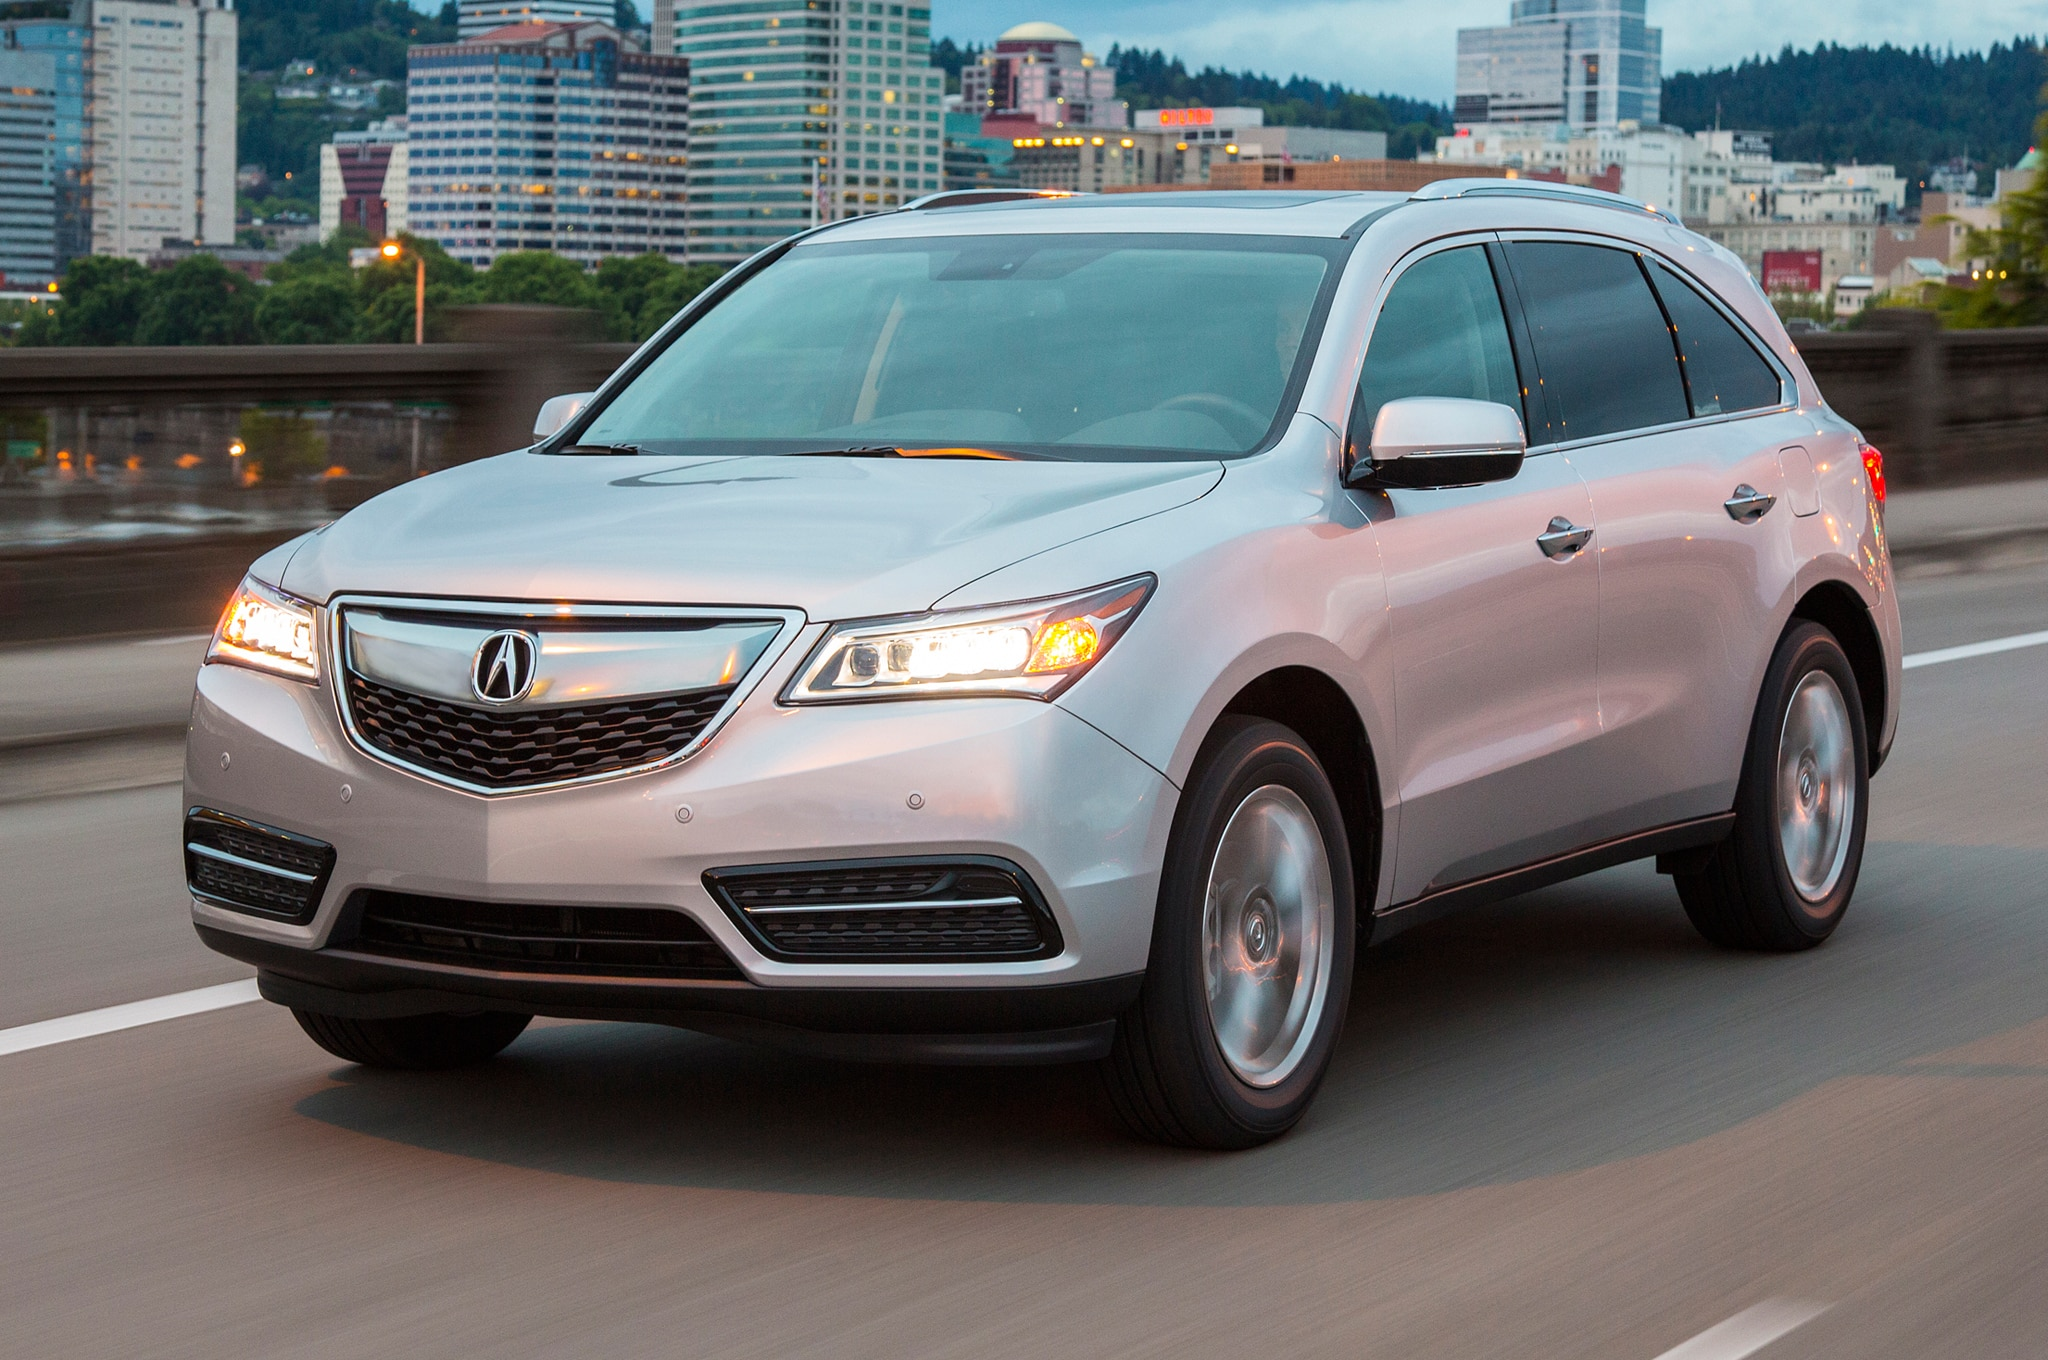 2016 acura mdx updated with nine speed automatic new tech features pin 2002 acura mdx engine diagram on pinterest [ 660:438 x 2048 Pixel ]